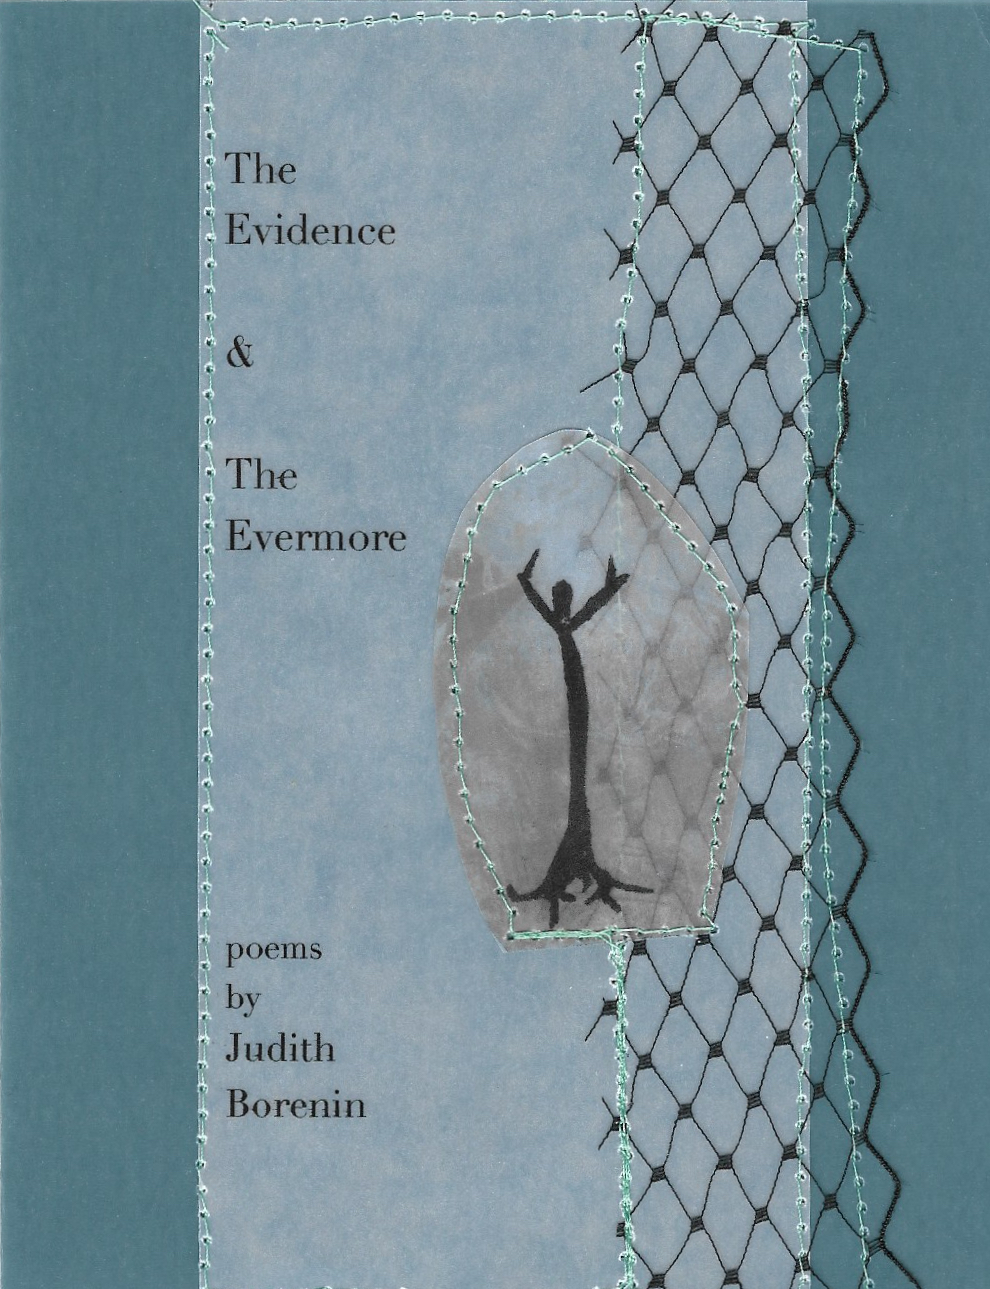 The evidence & The evermore - byJudith BoreninJudith was surrendered to the arms of a stranger at birth who died four years later. She was adopted by a magical world of poetry thereafter.She survived an Australian convent and the Great Alaska Quake of 1964.She discovered her blood sister and brother in 2007.She bore two sons, Tristan and Ethan. Ethan died July 21, 2016. His death prompted these poems. She has been published in various anthologies including The Floating Bridge Press Review IV, The Raven Chronicles: Last Call, Ethel Zine 3 and will be published this summer in The Poetica Review and Synchronized Chaos.